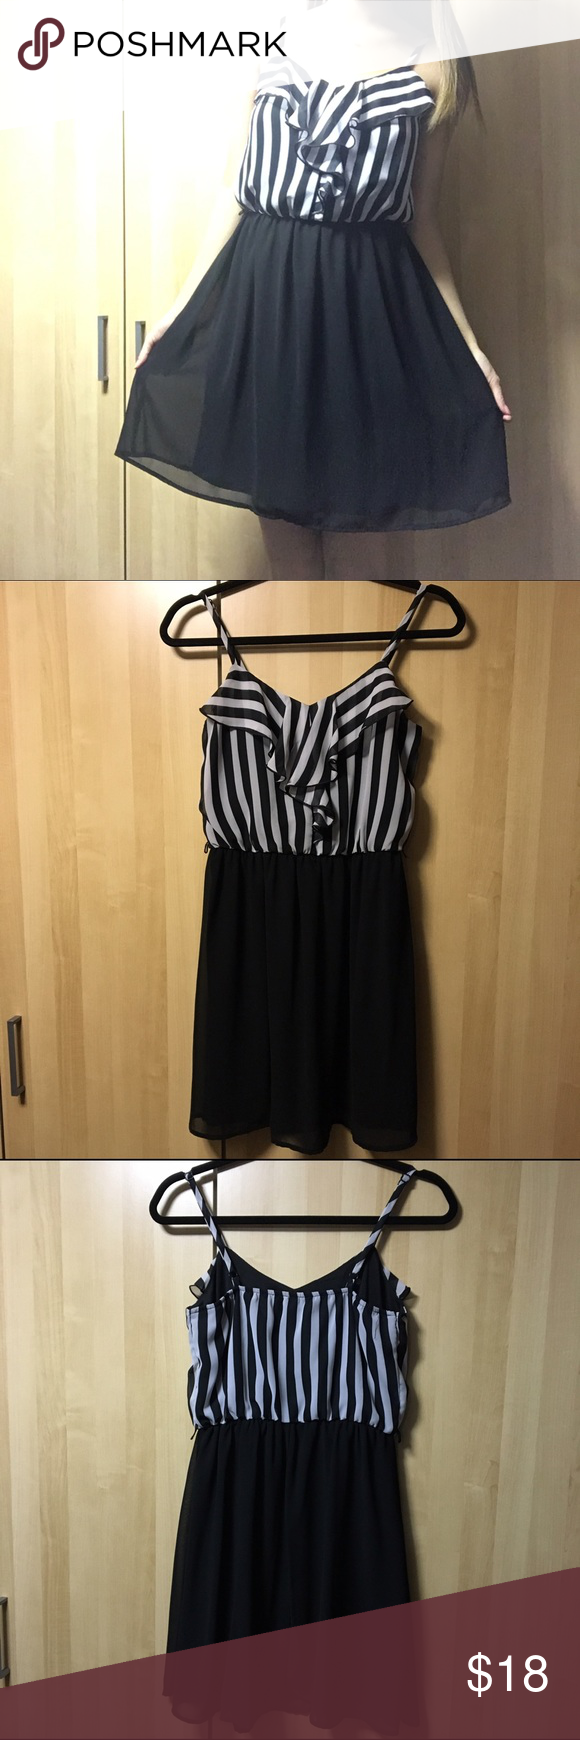 Ruffled Top Chiffon Dress An adorable ruffled chiffon black & white striped top with black bottom. Two layers, lightweight and comfortable. Adjustable straps. Worn once, like new condition. Questions welcomed. BCX Dresses Mini